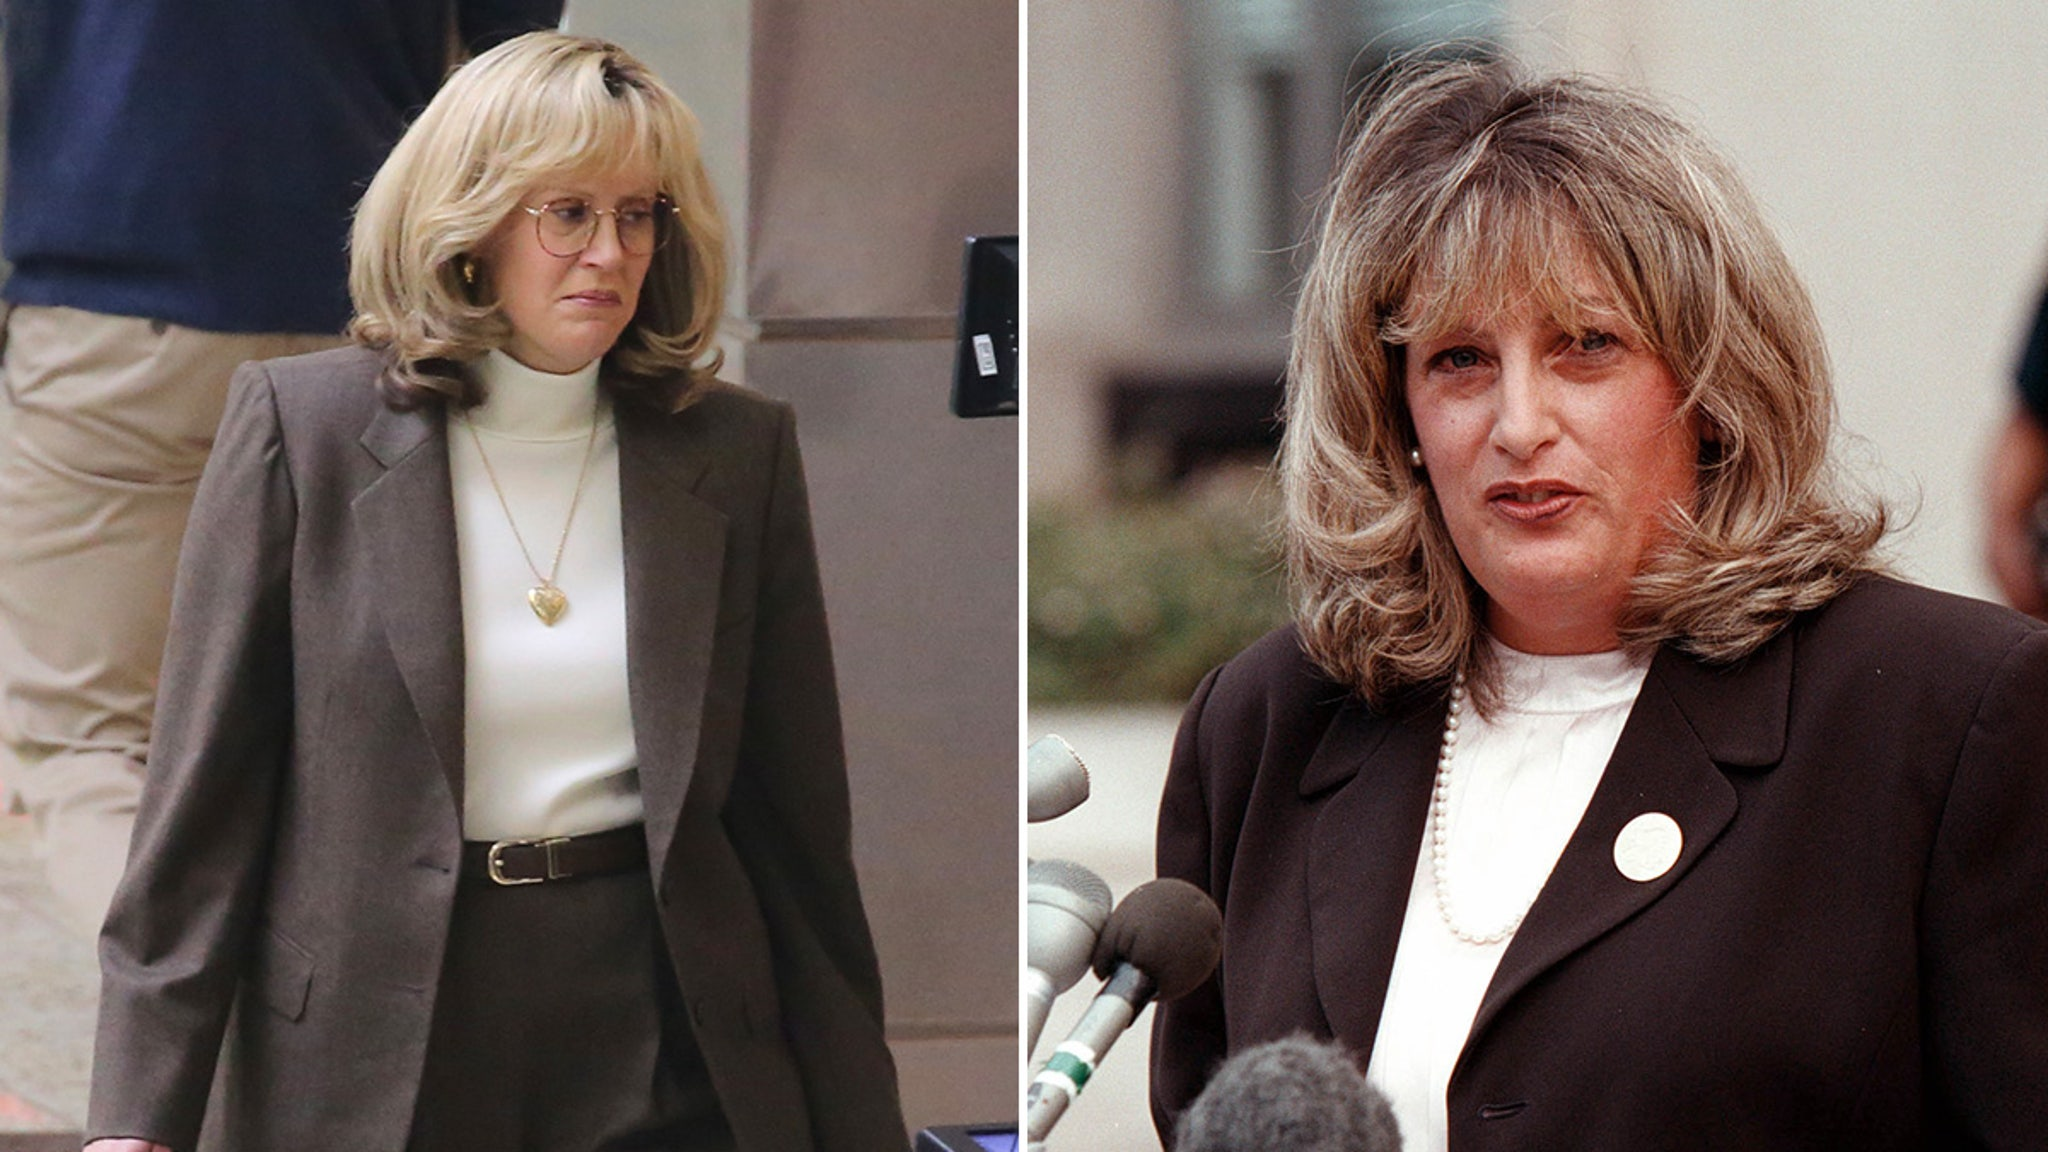 Sarah Paulson Ridiculously Dragged for Playing Linda Tripp in Fat Suit thumbnail